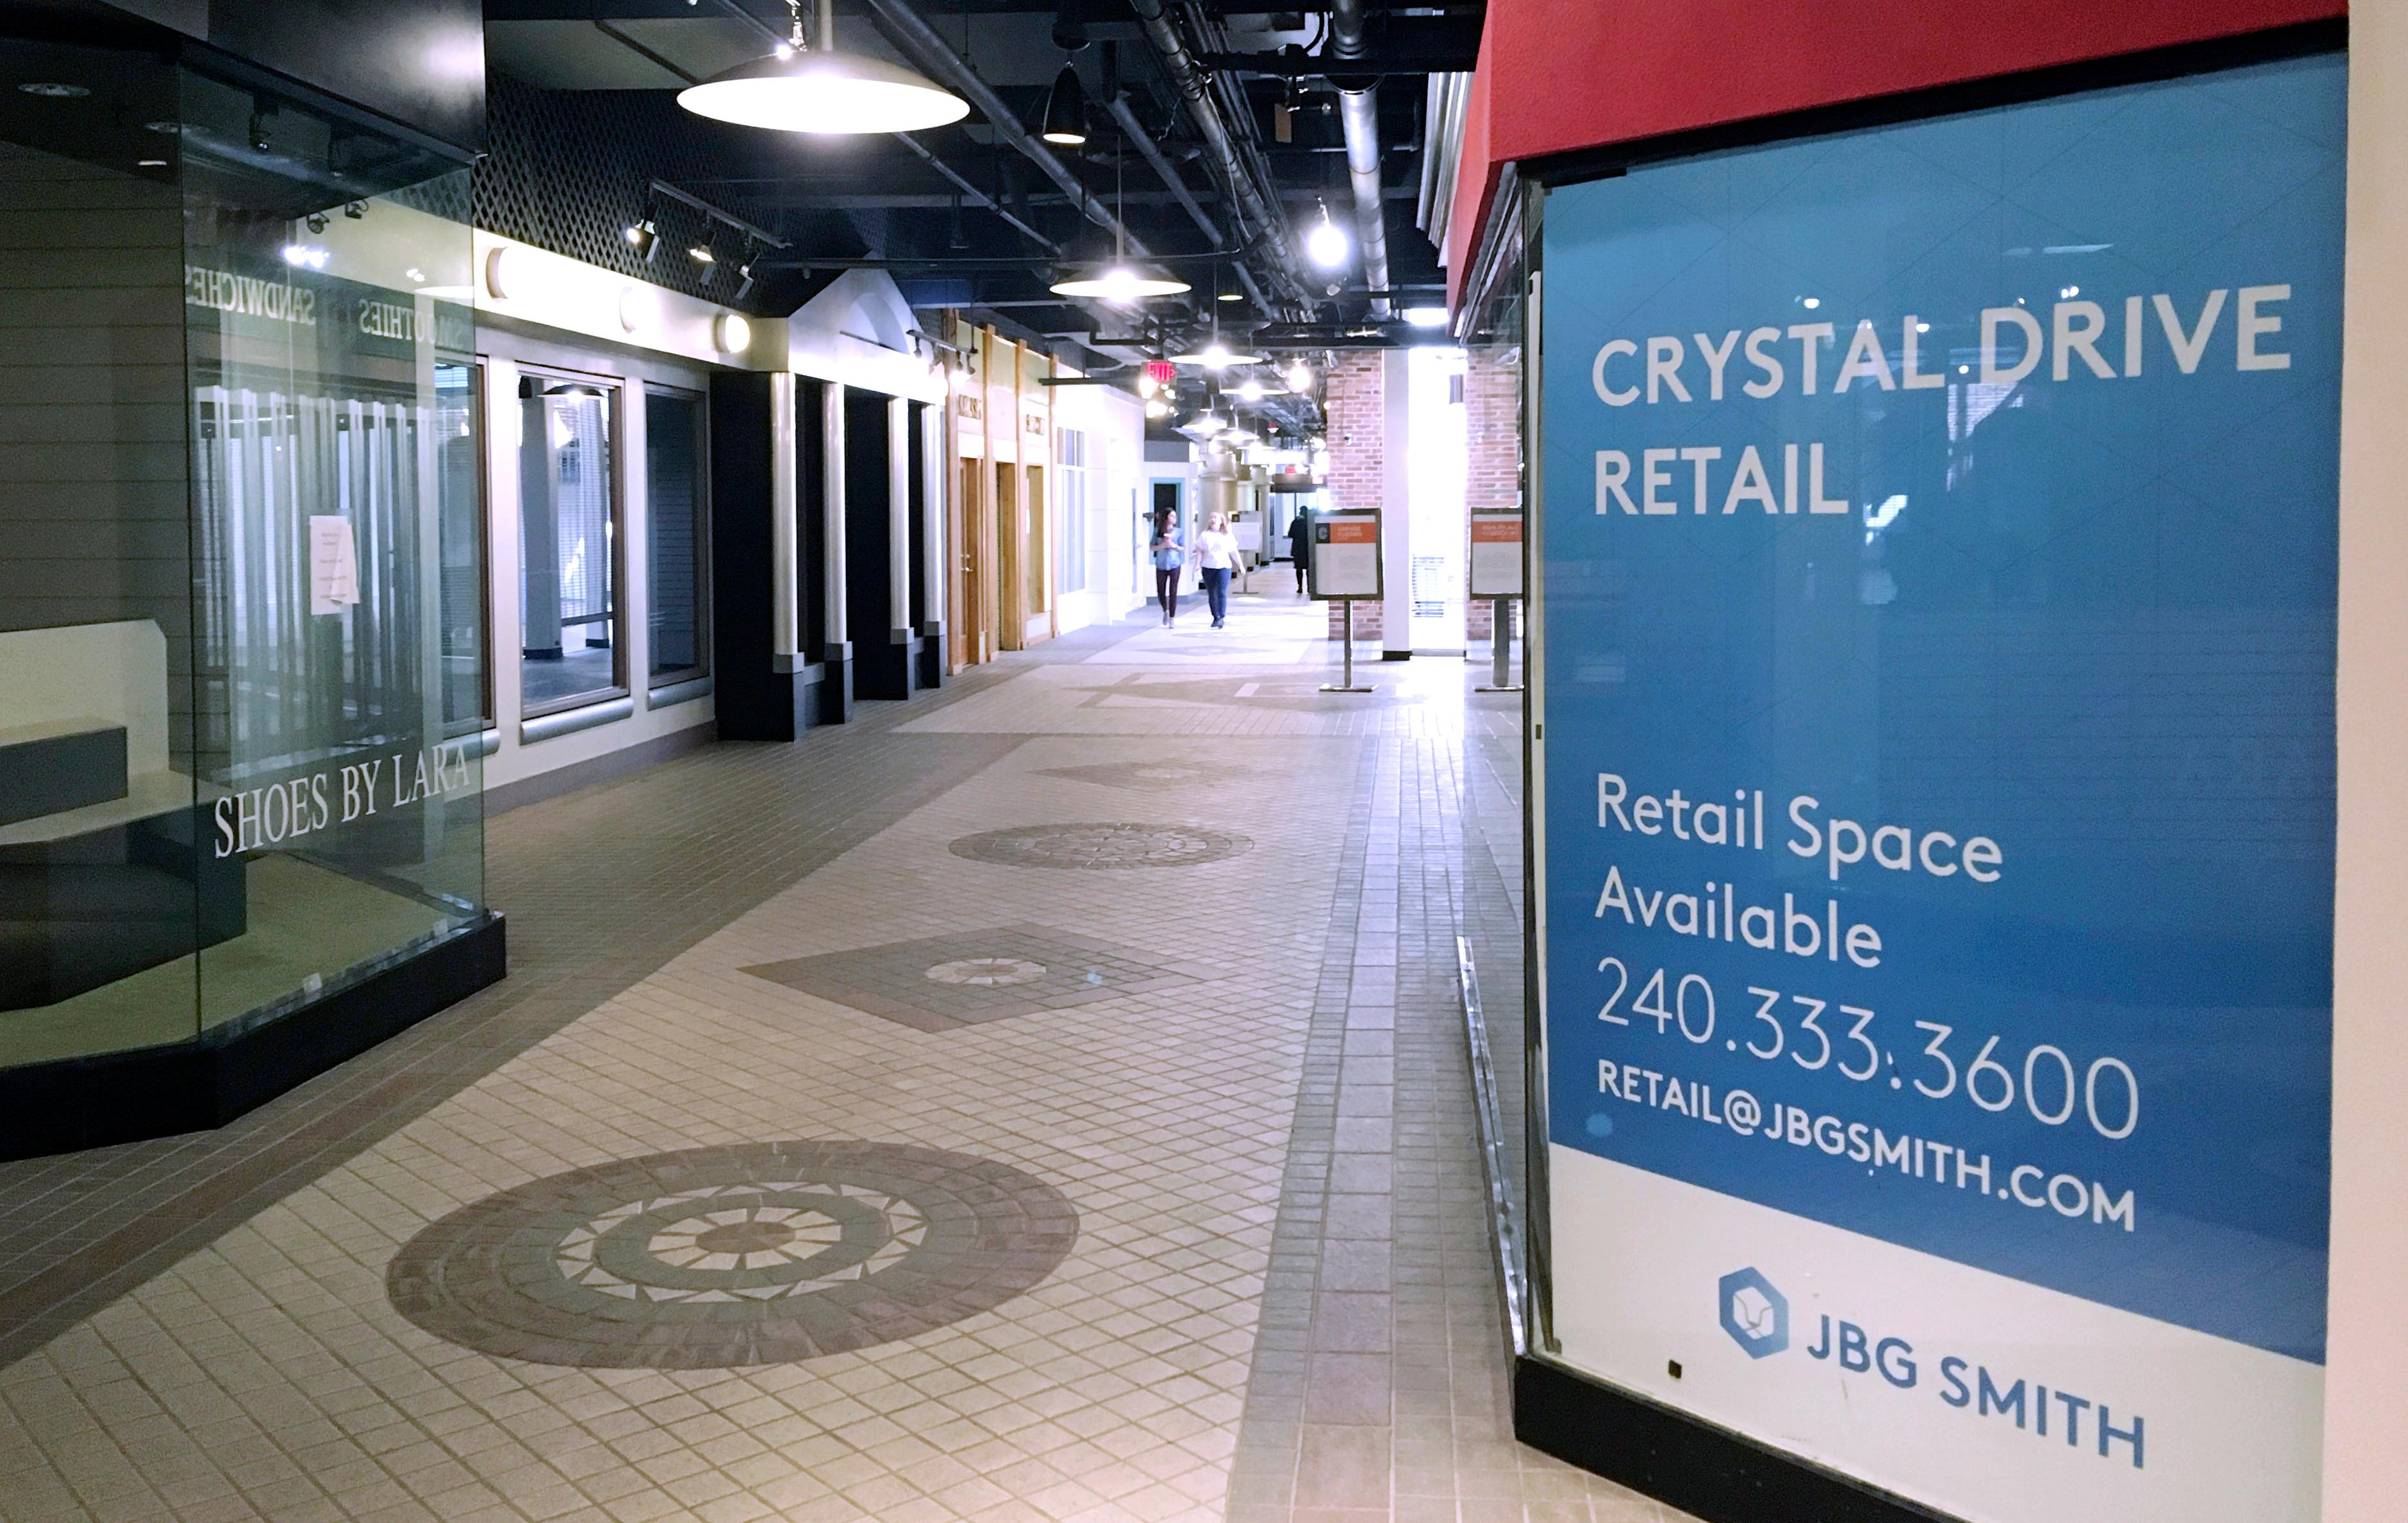 In this Thursday, Nov. 8, 2018, photo, pedestrians walk the underground corridors in Crystal City, Va. If any place in the U.S. is well positioned to absorb 25,000 Amazon jobs, it may well be Crystal City, which has lost nearly that many jobs over the last 15 years. (AP Photo/Matthew Barakat)